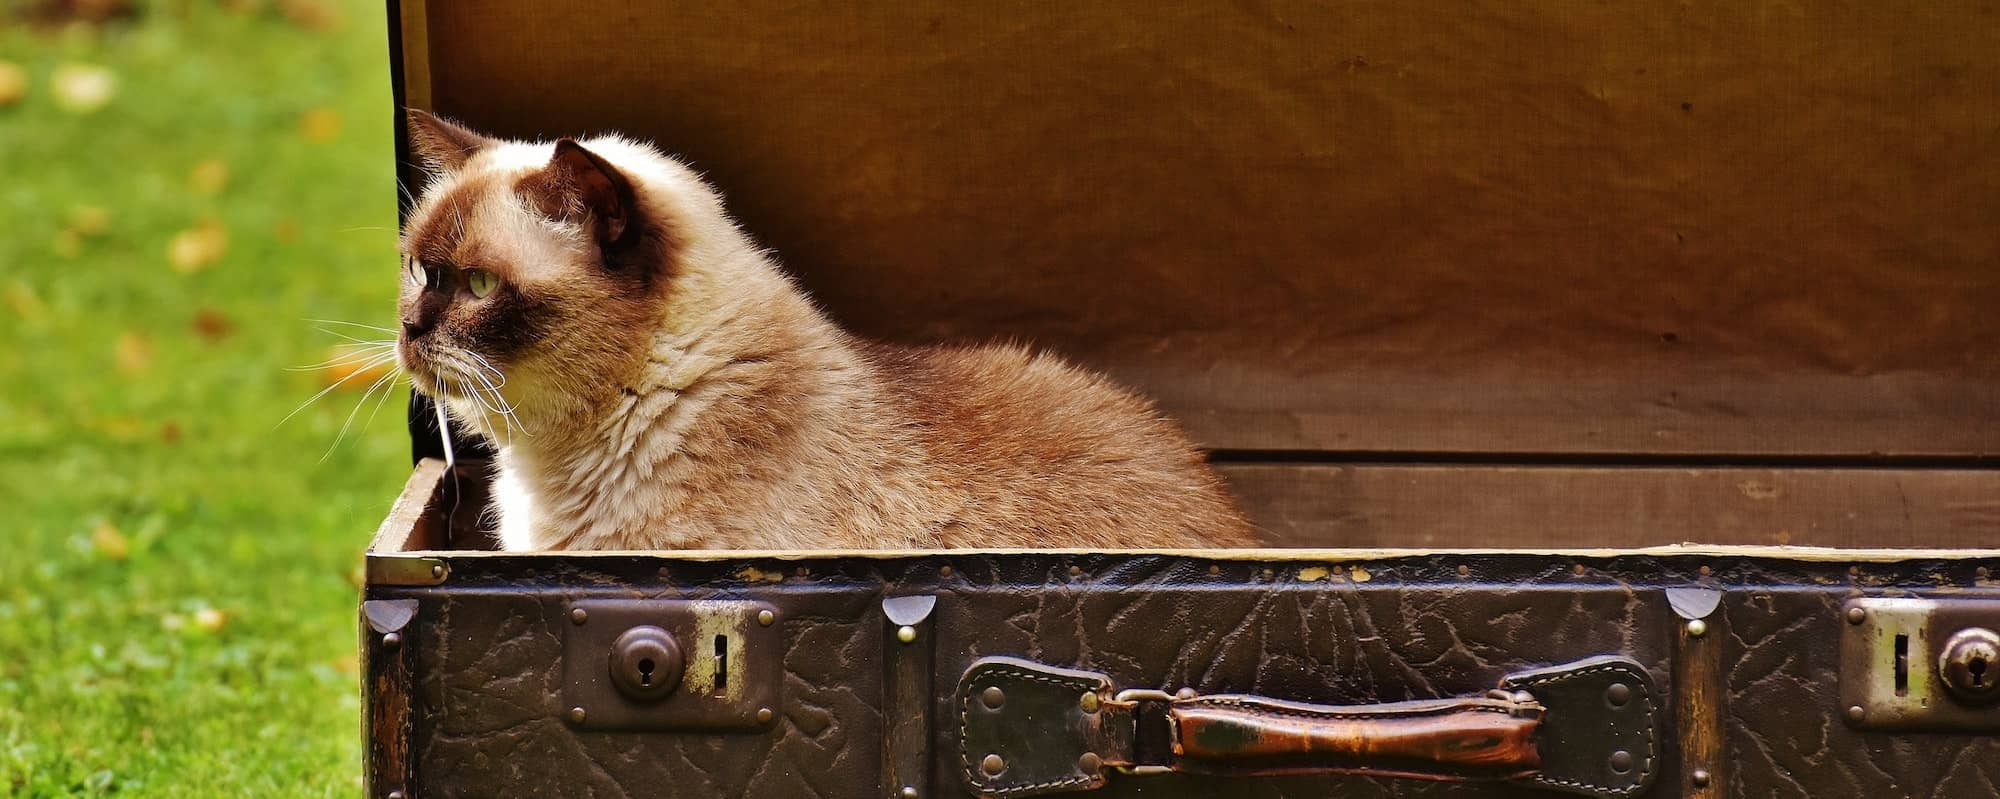 Cat sitting in a leather suitcase